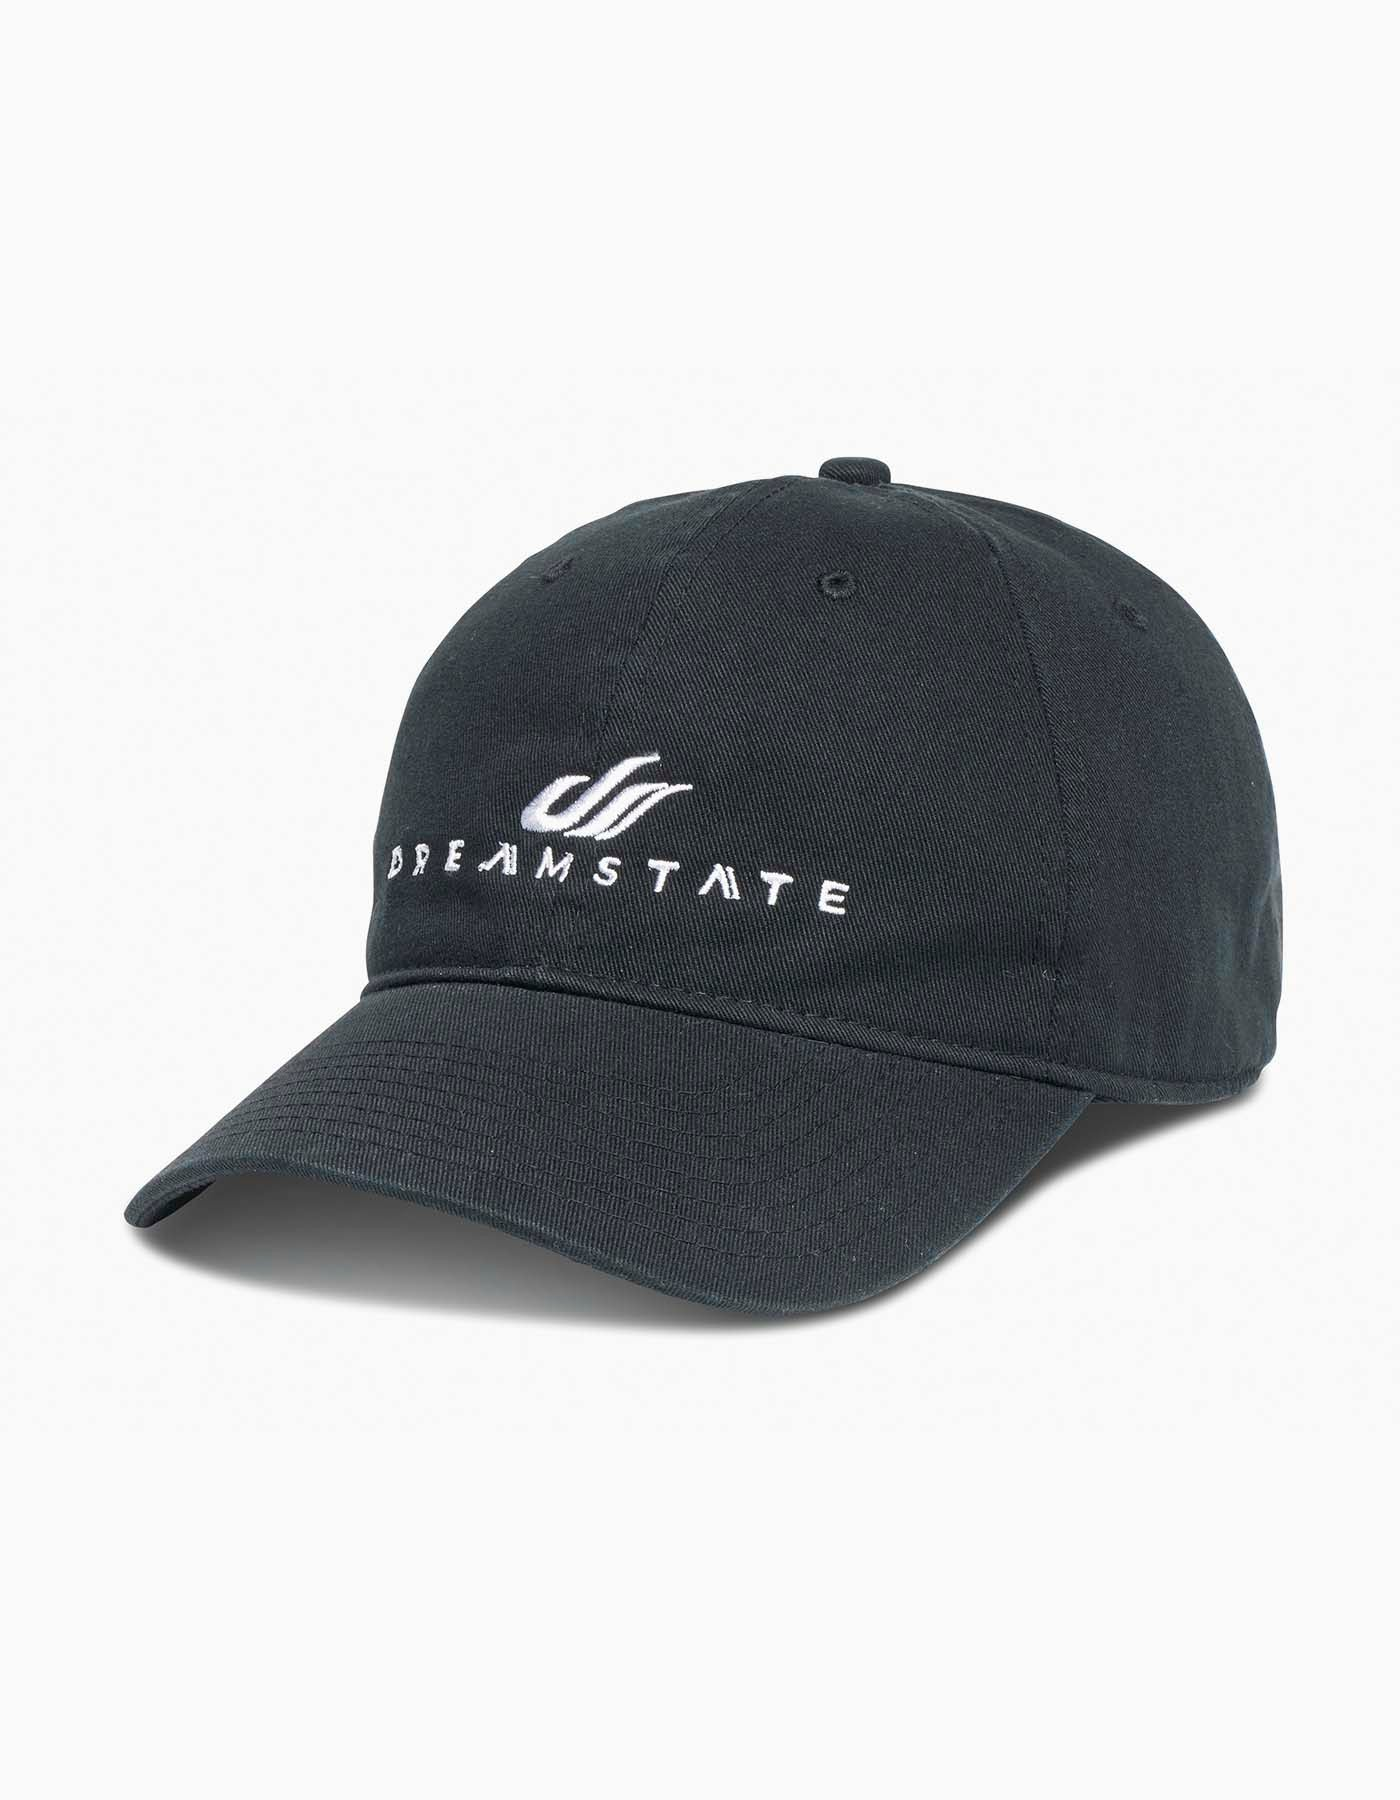 Dreamstate Dad Hat Black